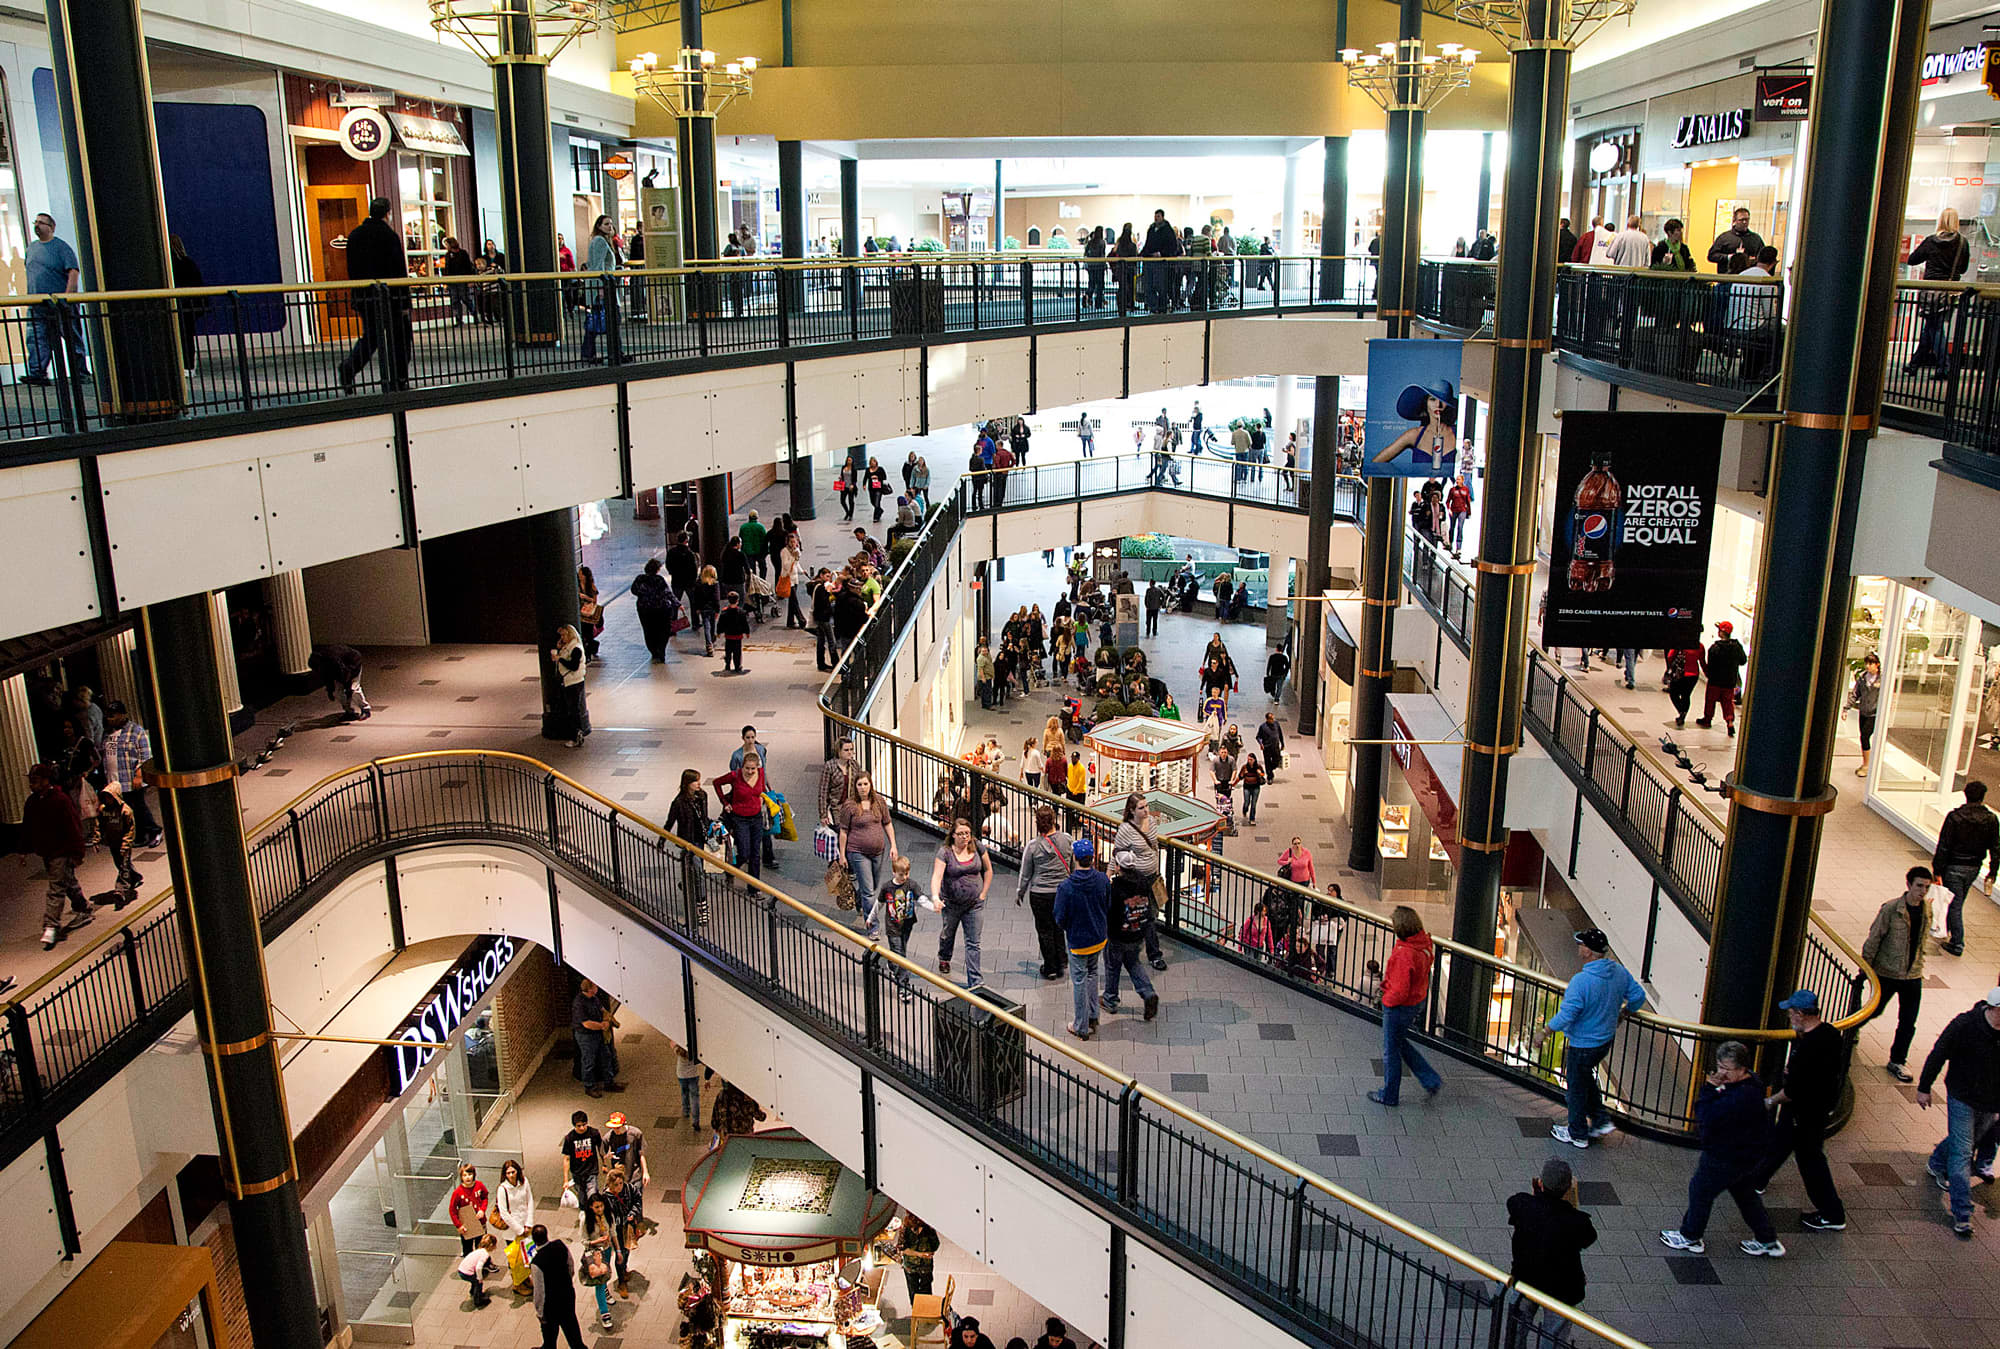 The Mall of America hasn't paid its mortgage in two months